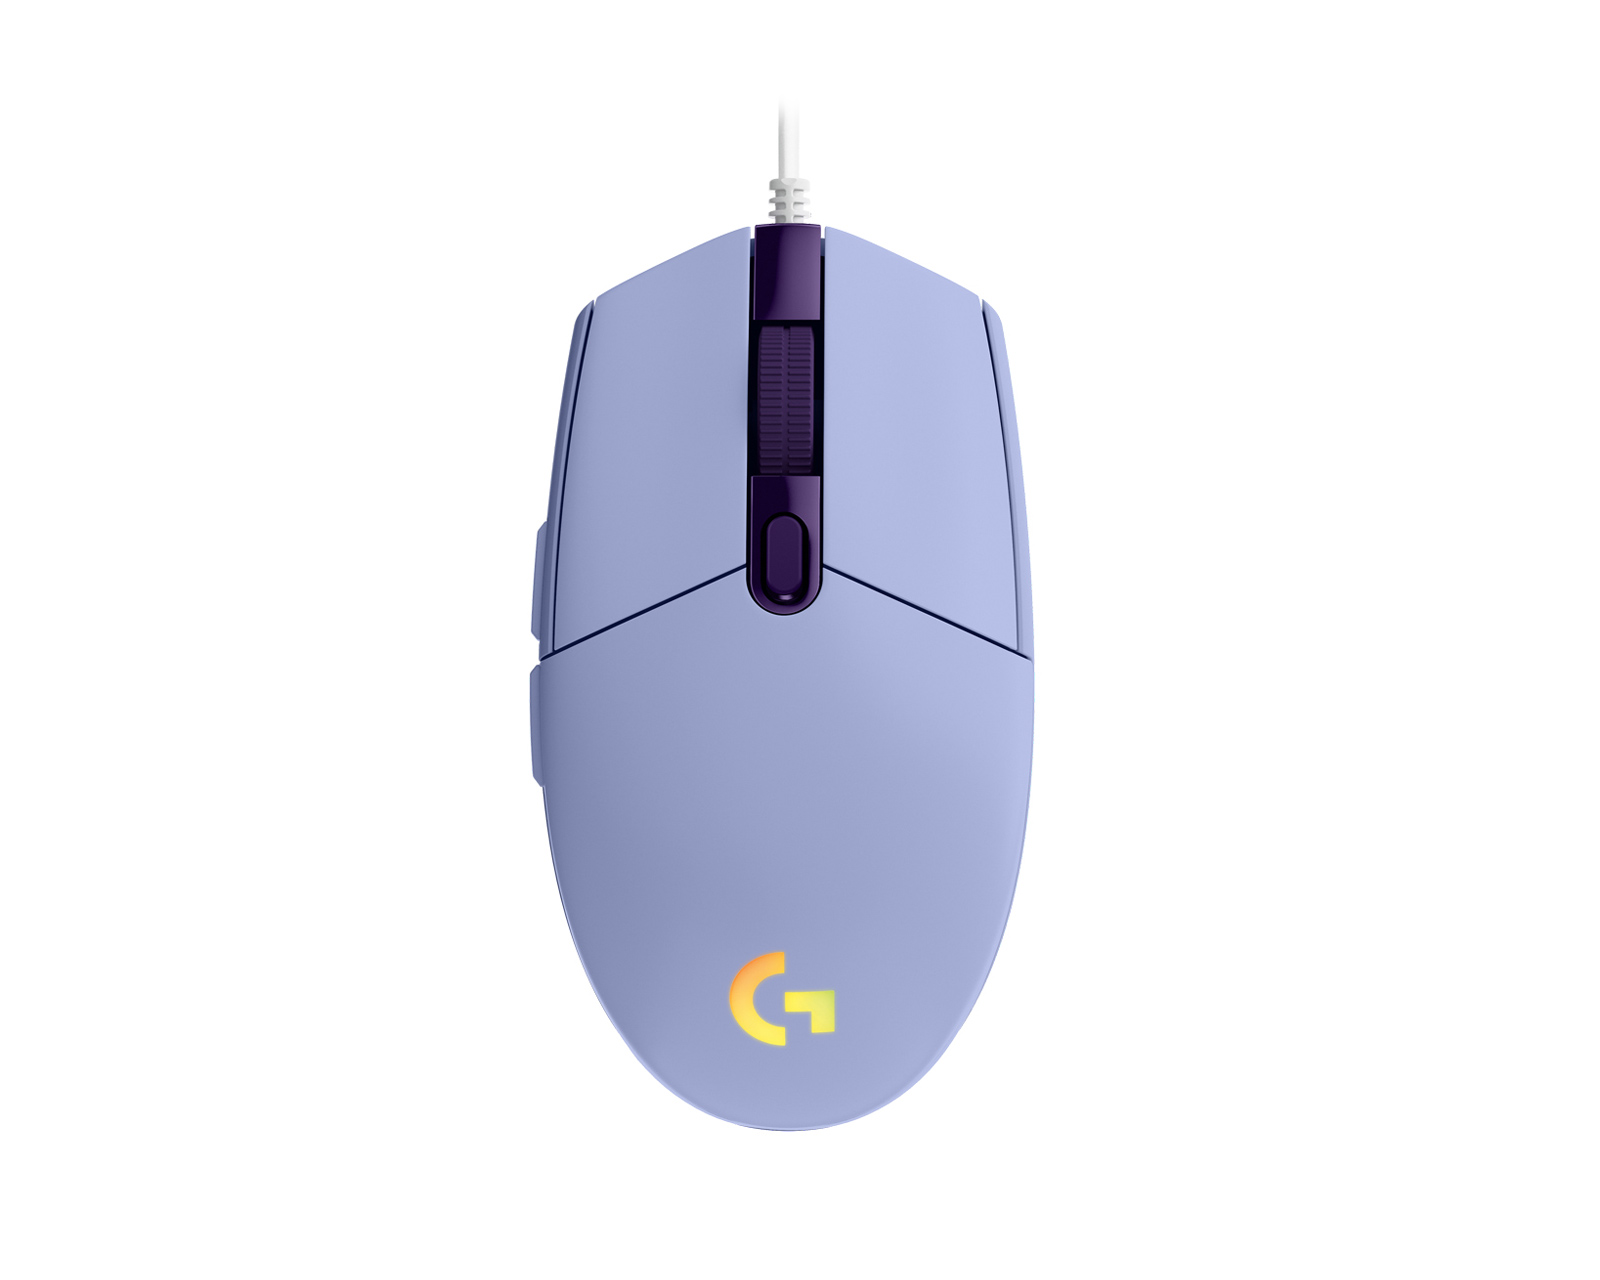 Kjøpe Logitech G203 Lightsync Gaming Mus Hvit på MaxGaming.no